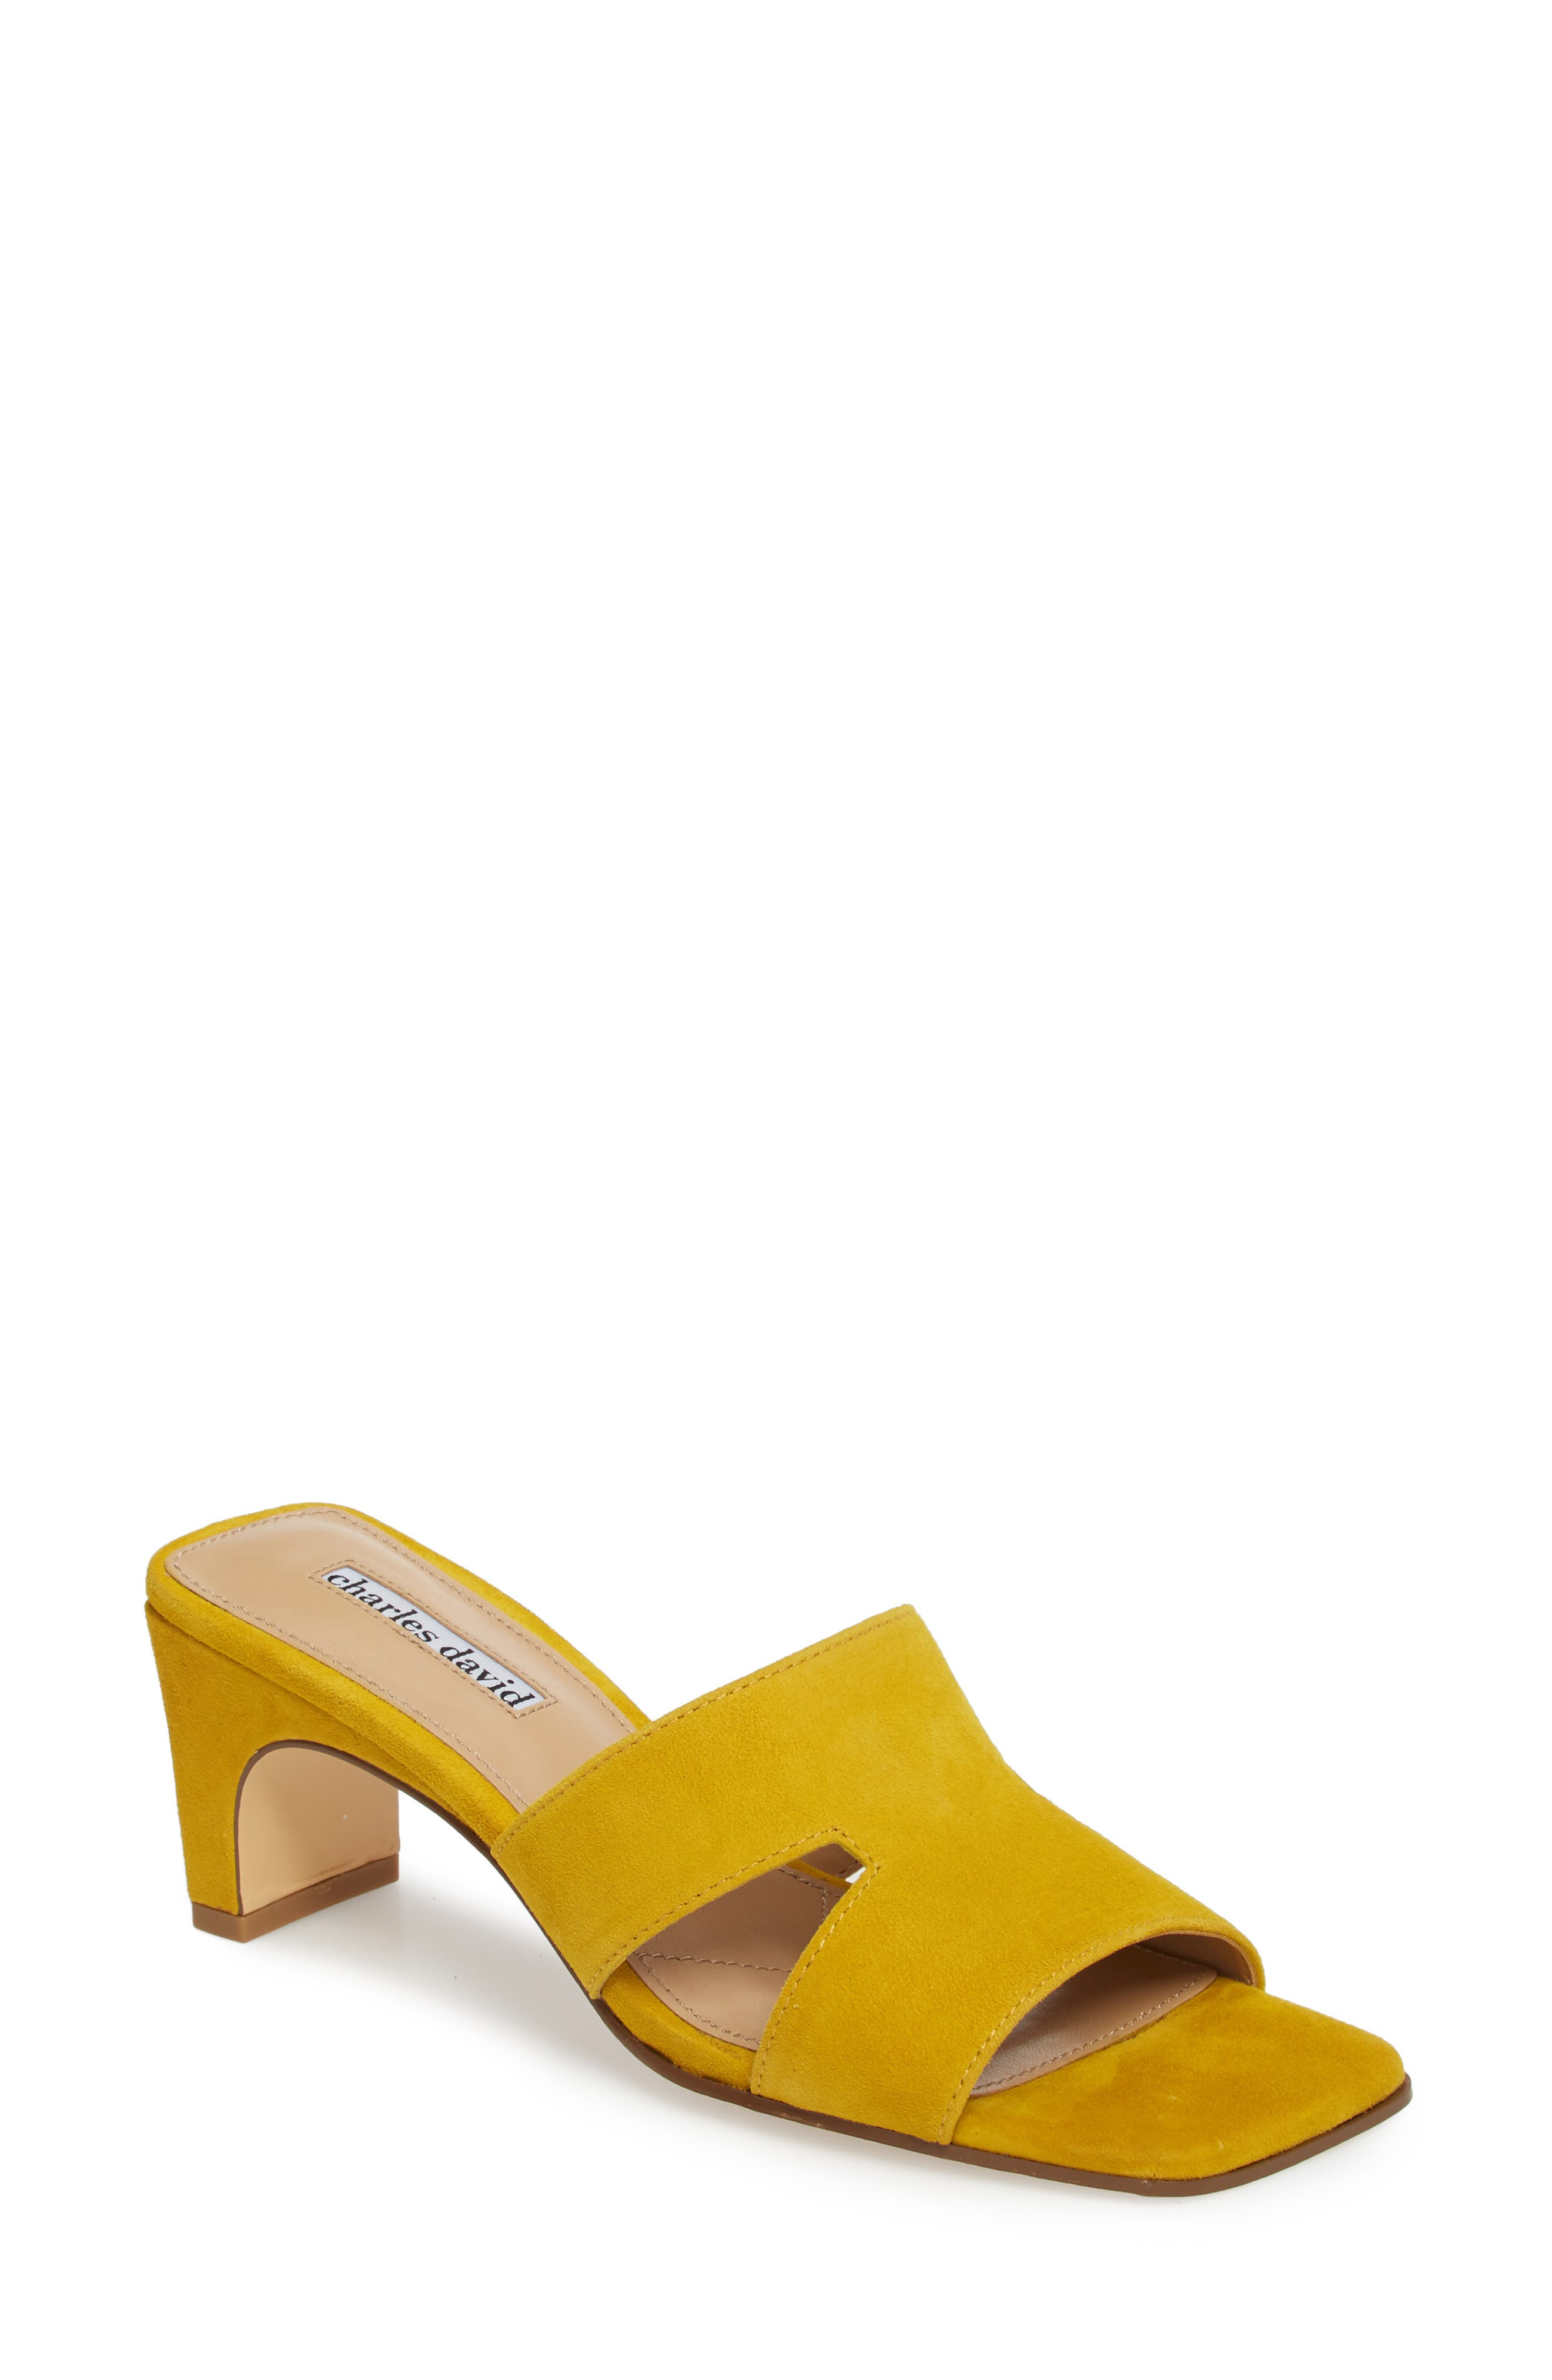 Harley Slide Sandal,                         Main,                         color, Bright Yellow Suede